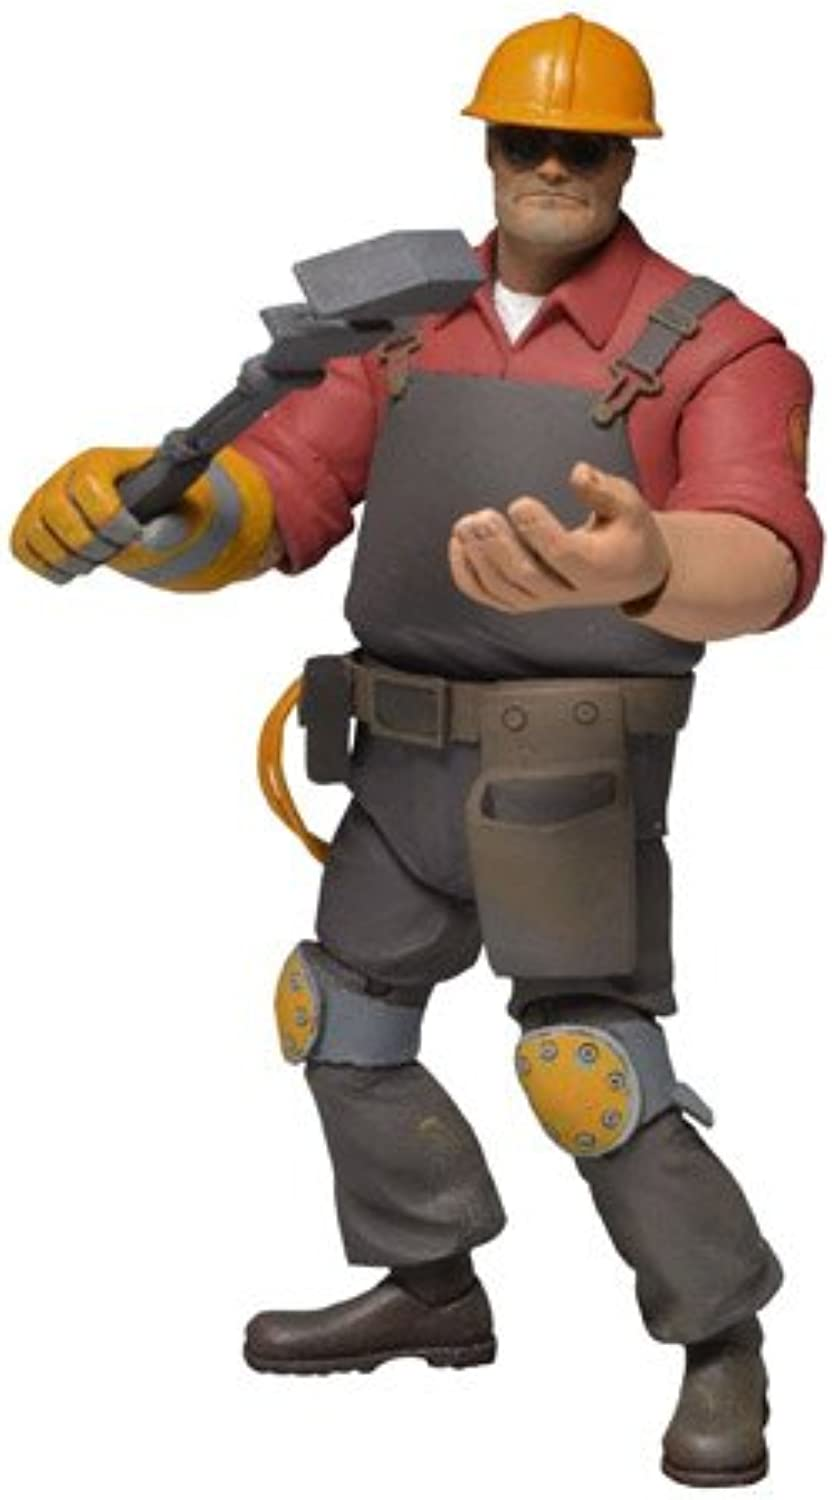 Neca Team Fortress 2 - Series 3 rot Engineer 16 cm Fig.